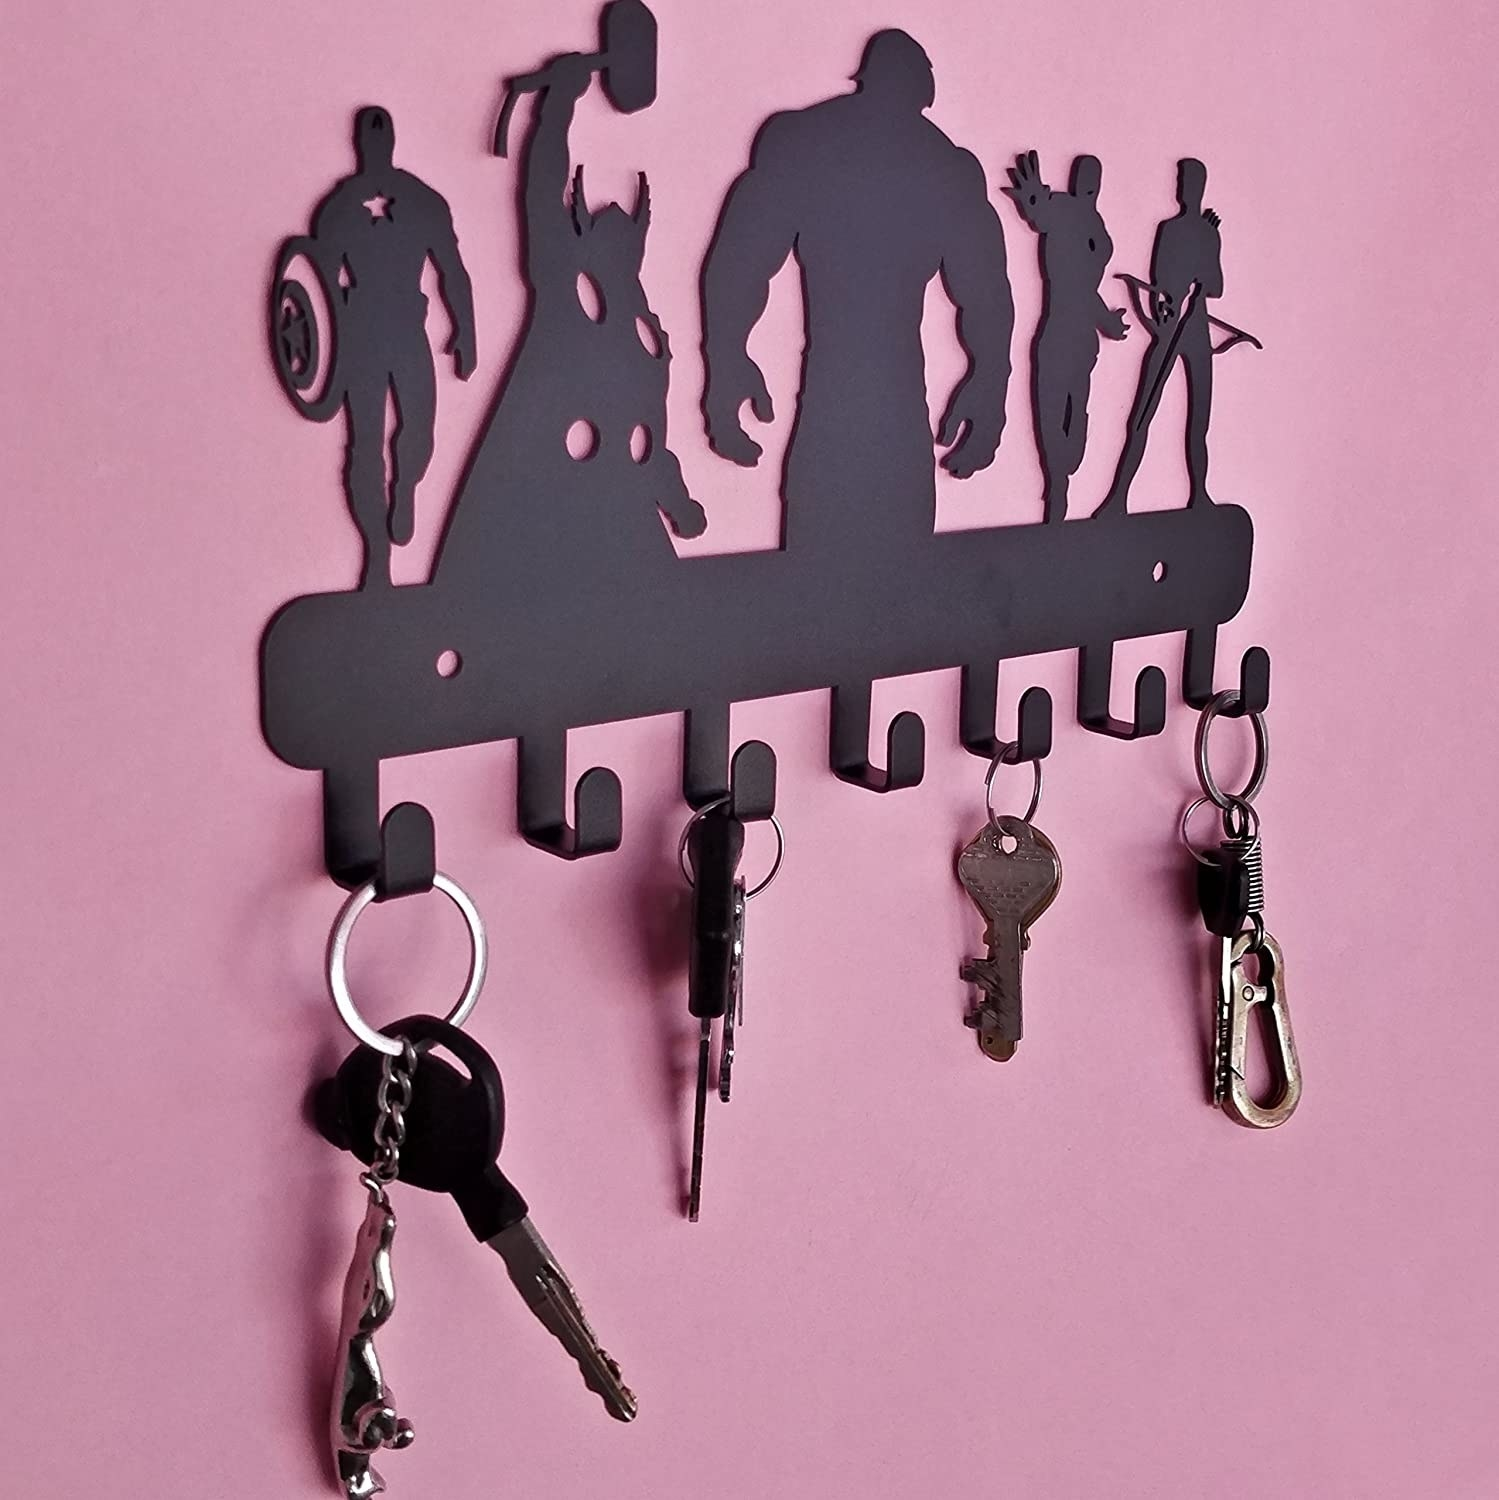 Several keys hanging from the organizer